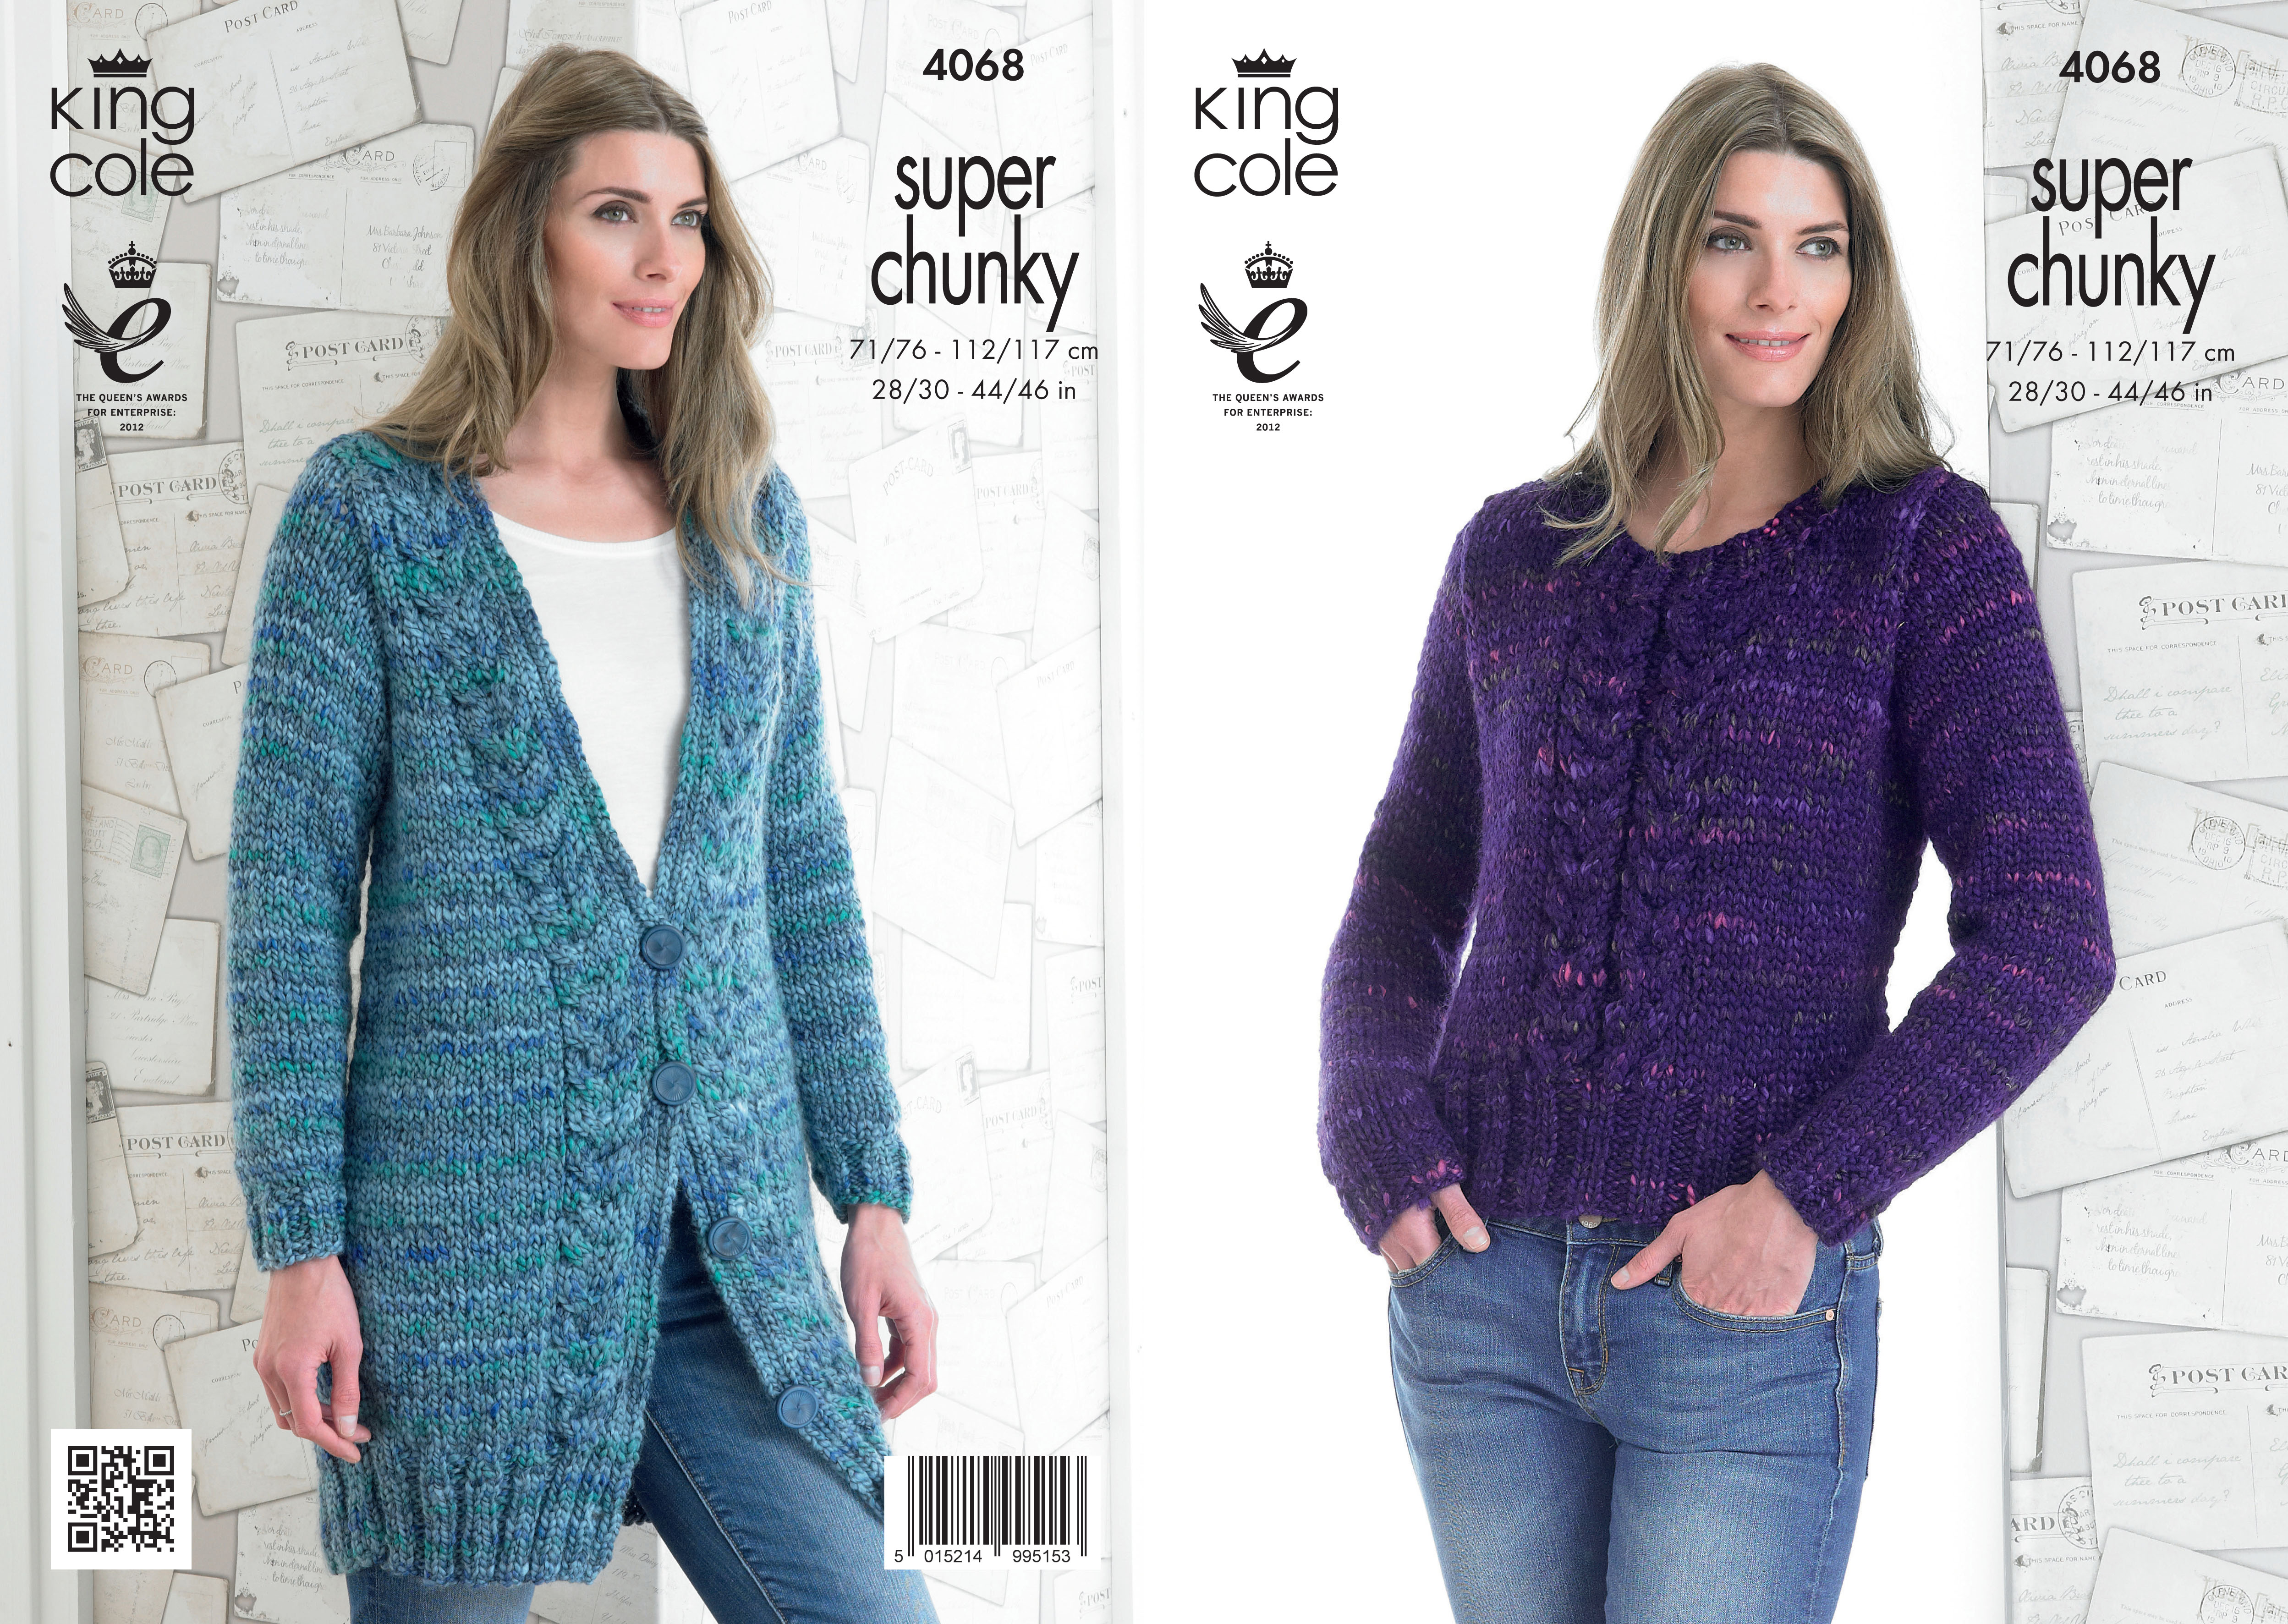 Knitting Pattern Ladies Cable Jumper : Ladies Gypsy Super Chunky Knit Pattern King Cole Cable ...